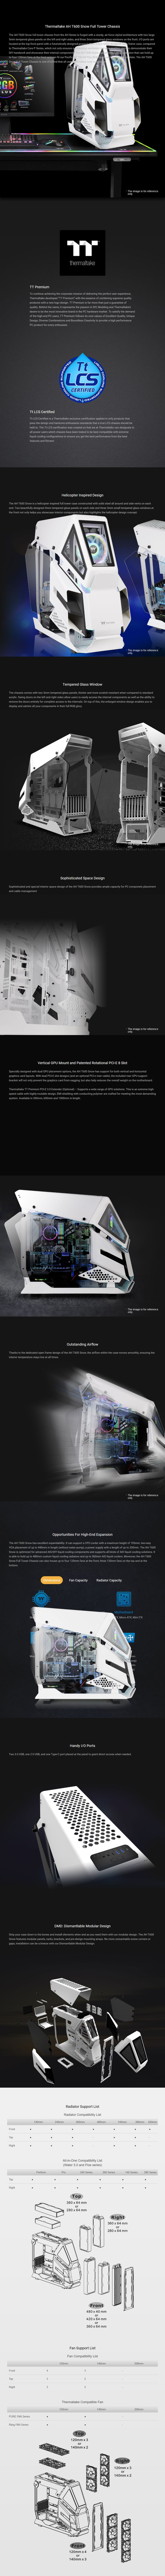 Thermaltake AH T600 Tempered Glass Full Tower Chassis E-ATX - Snow - Overview 1